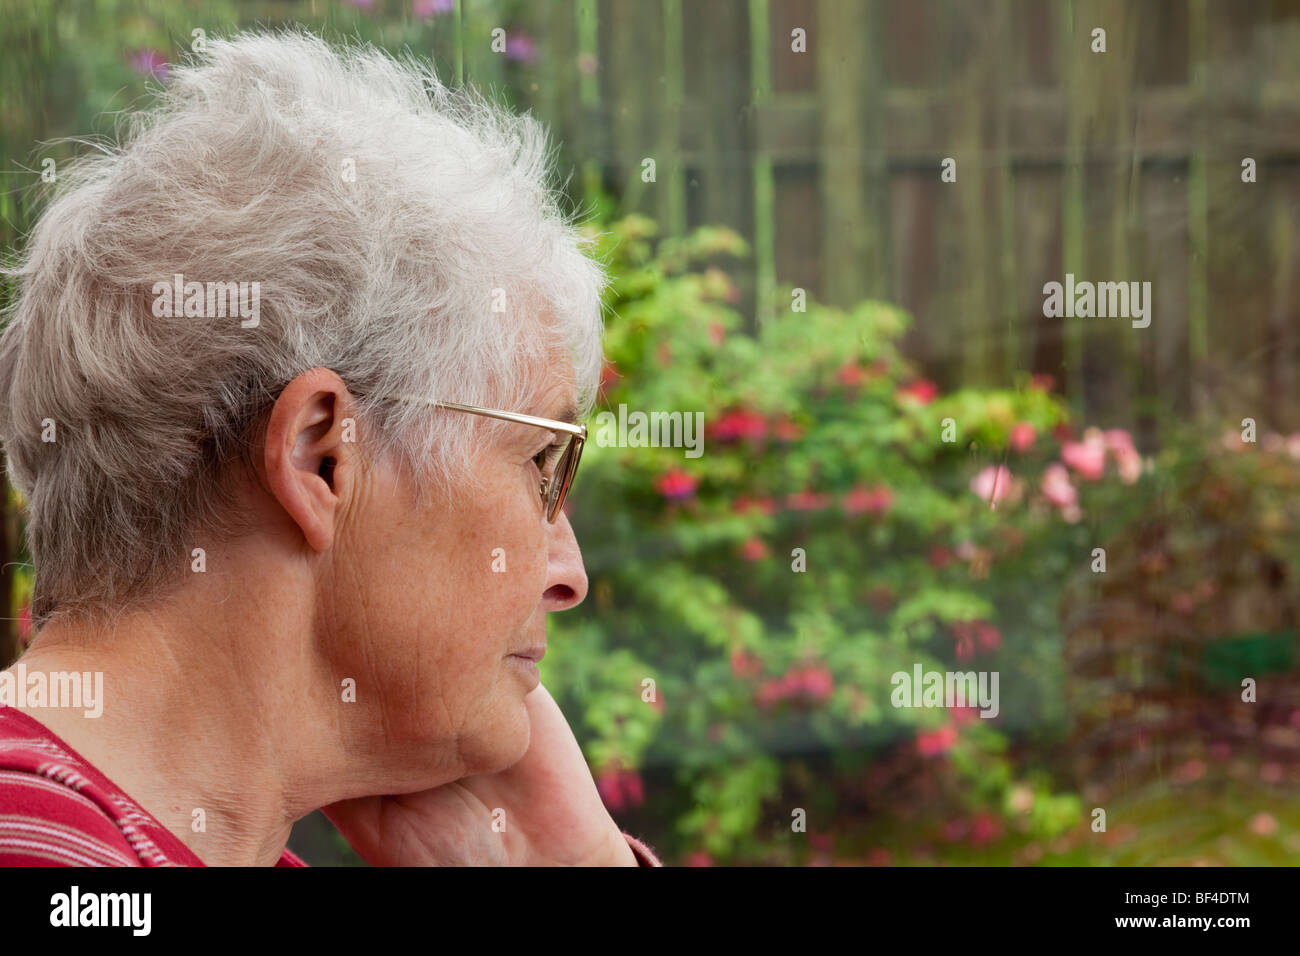 Unhappy lonely depressed elderly senior woman with a sorrowful expression looking out through a window to a garden - Stock Image